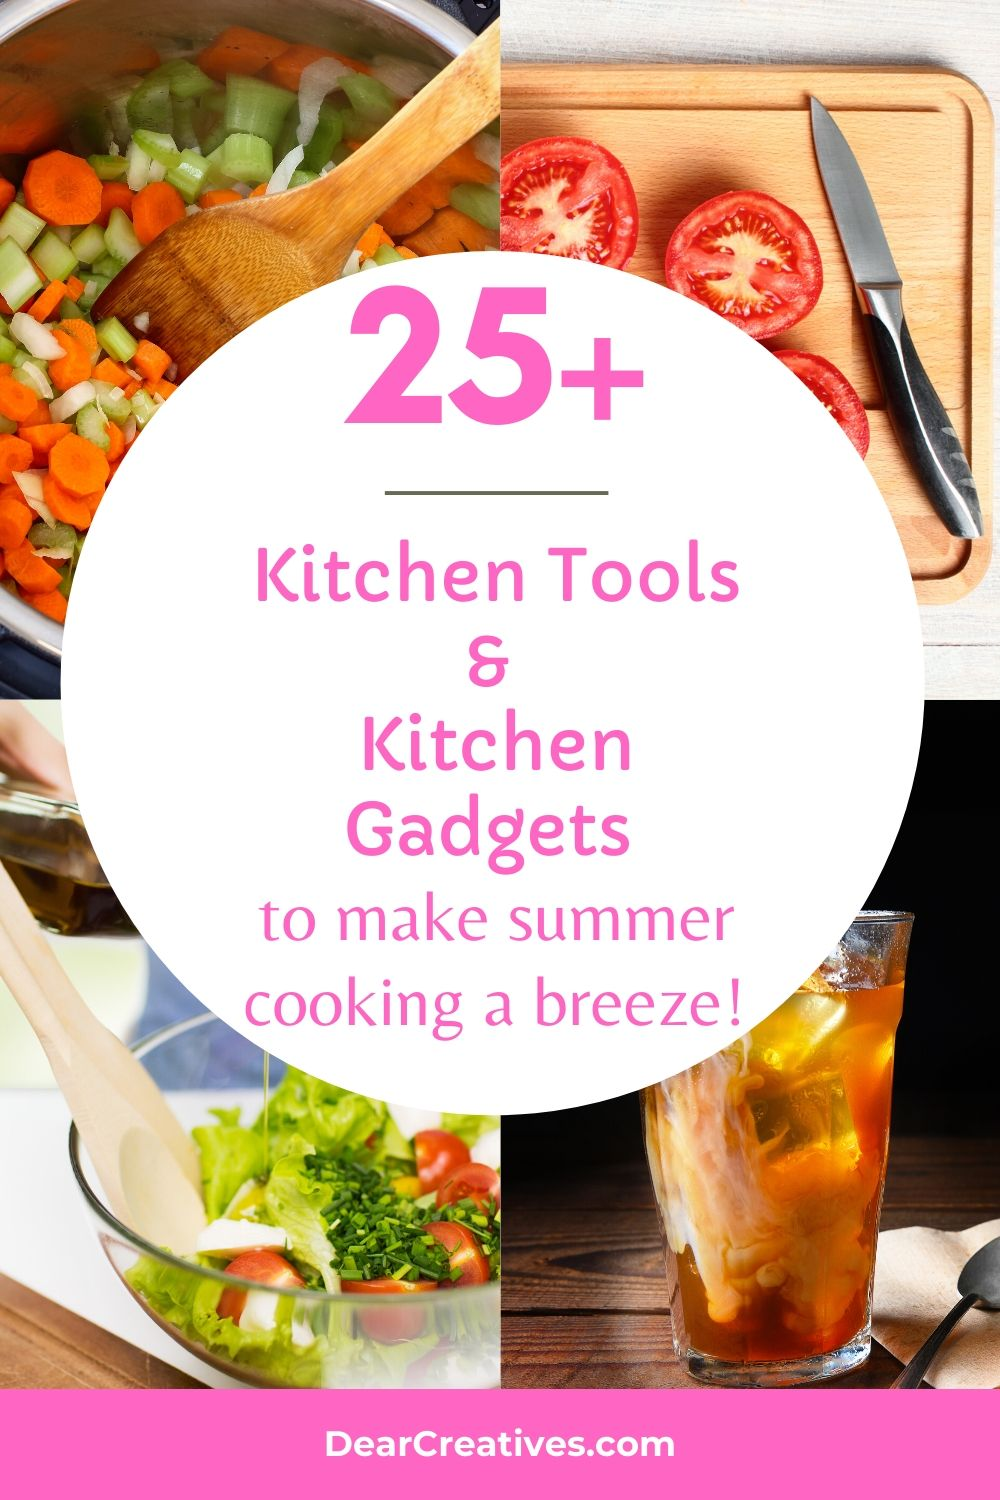 Kitchen Tools For Summer – Make Cooking A Breeze!